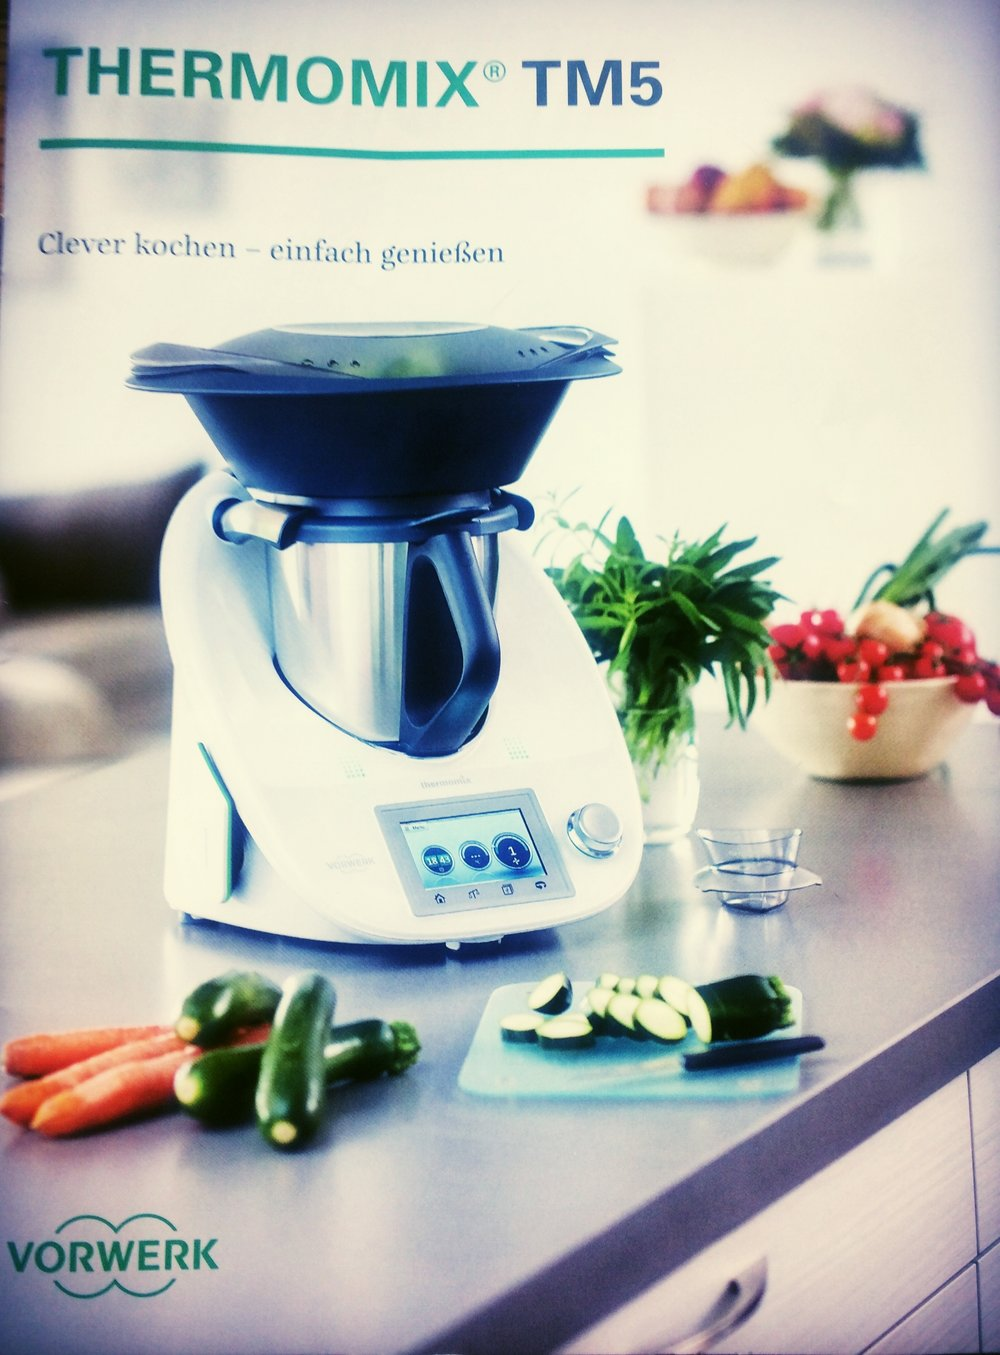 Thermomix: Our Shiny Kitchen Overlord — 40% German